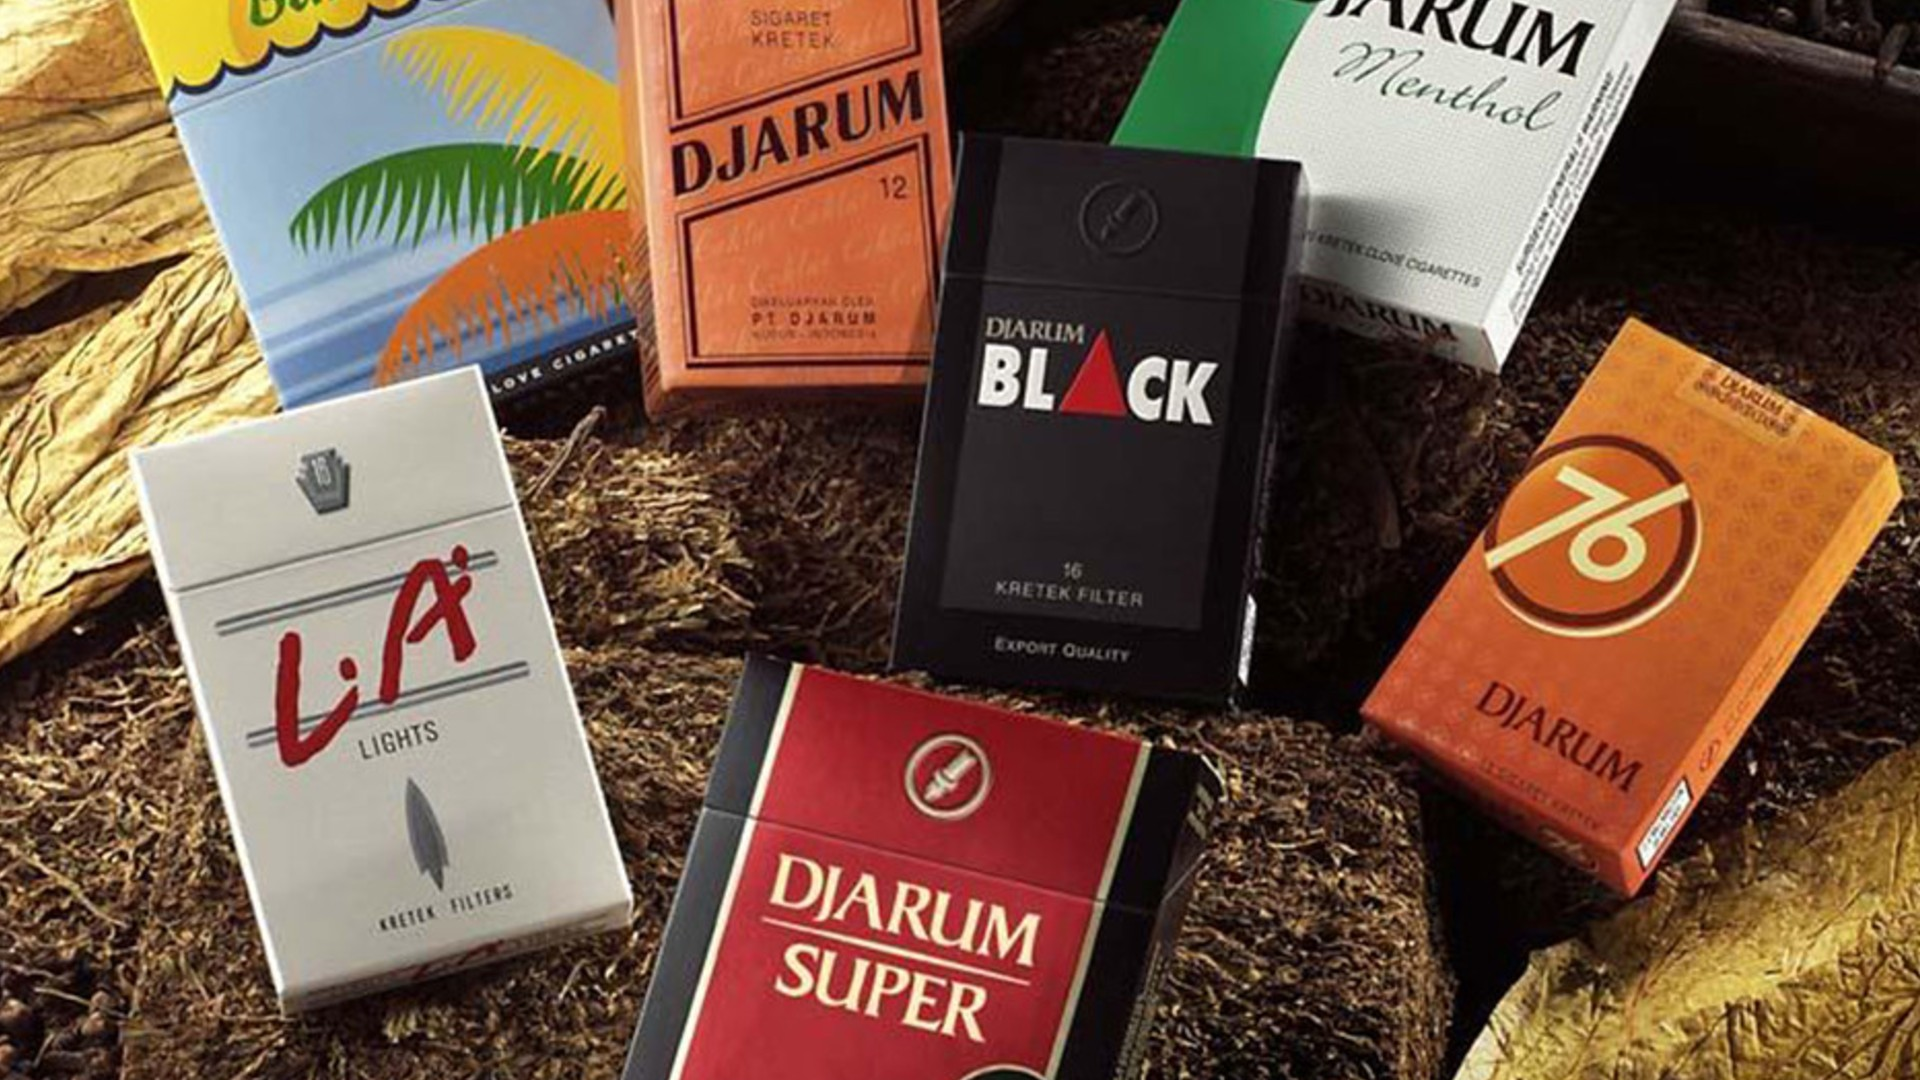 Djarum Kretek Cigarettes